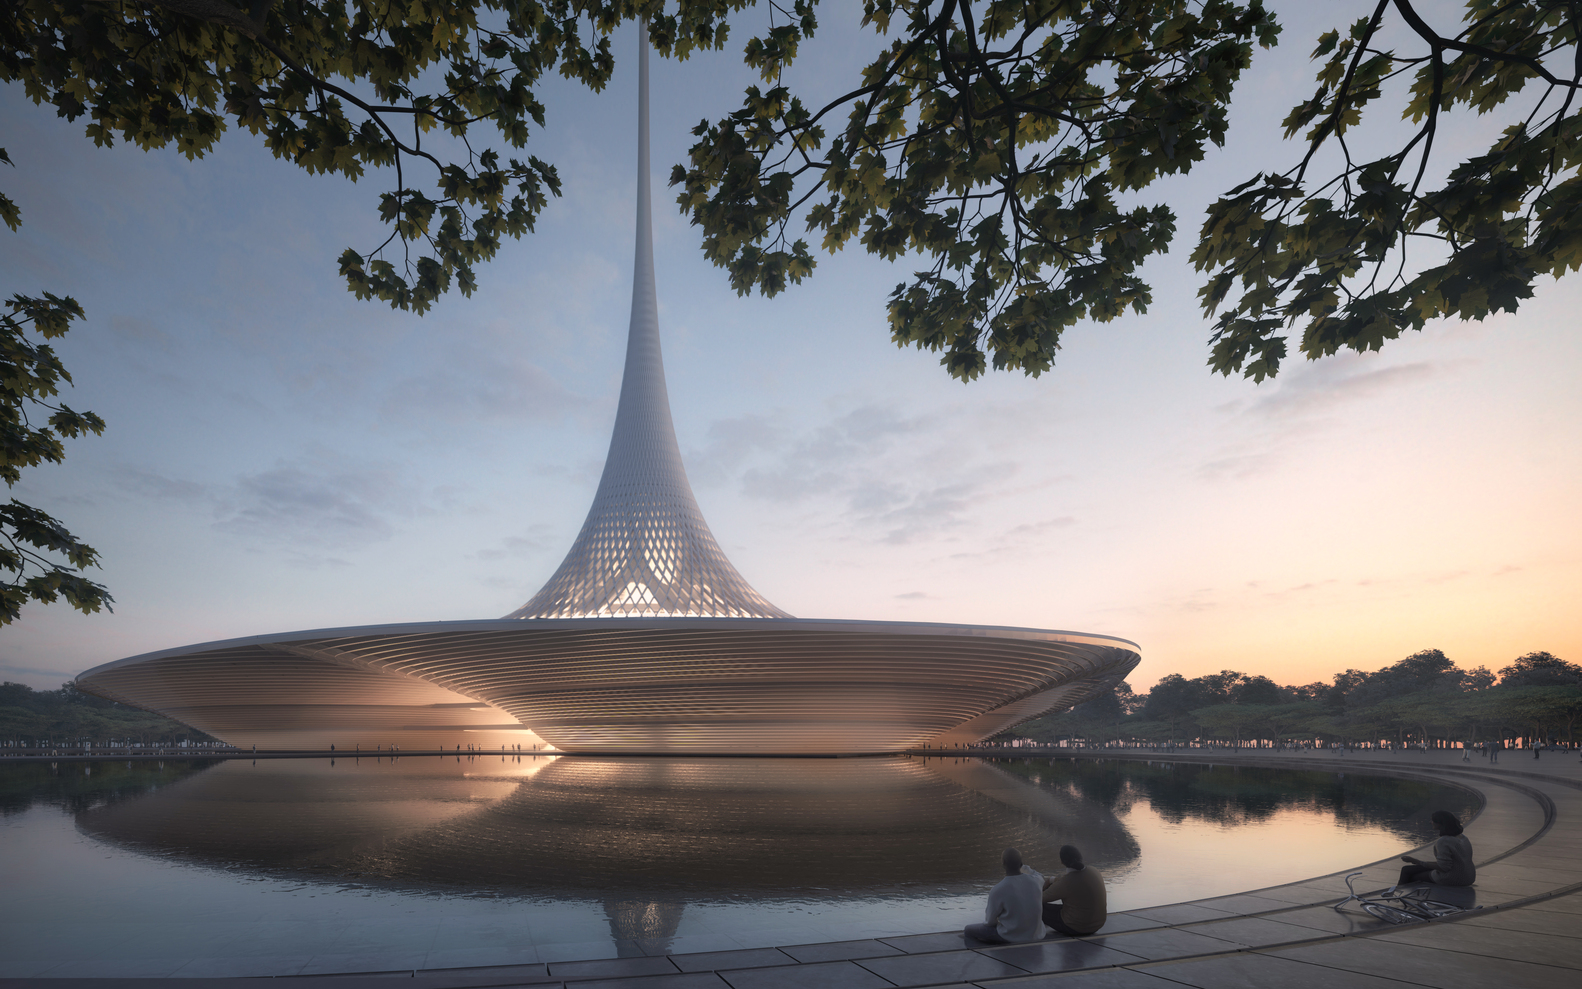 Foster + Partners Designs for Amaravati, the New Capital of Andhra Pradesh - IGS Magazine - 2